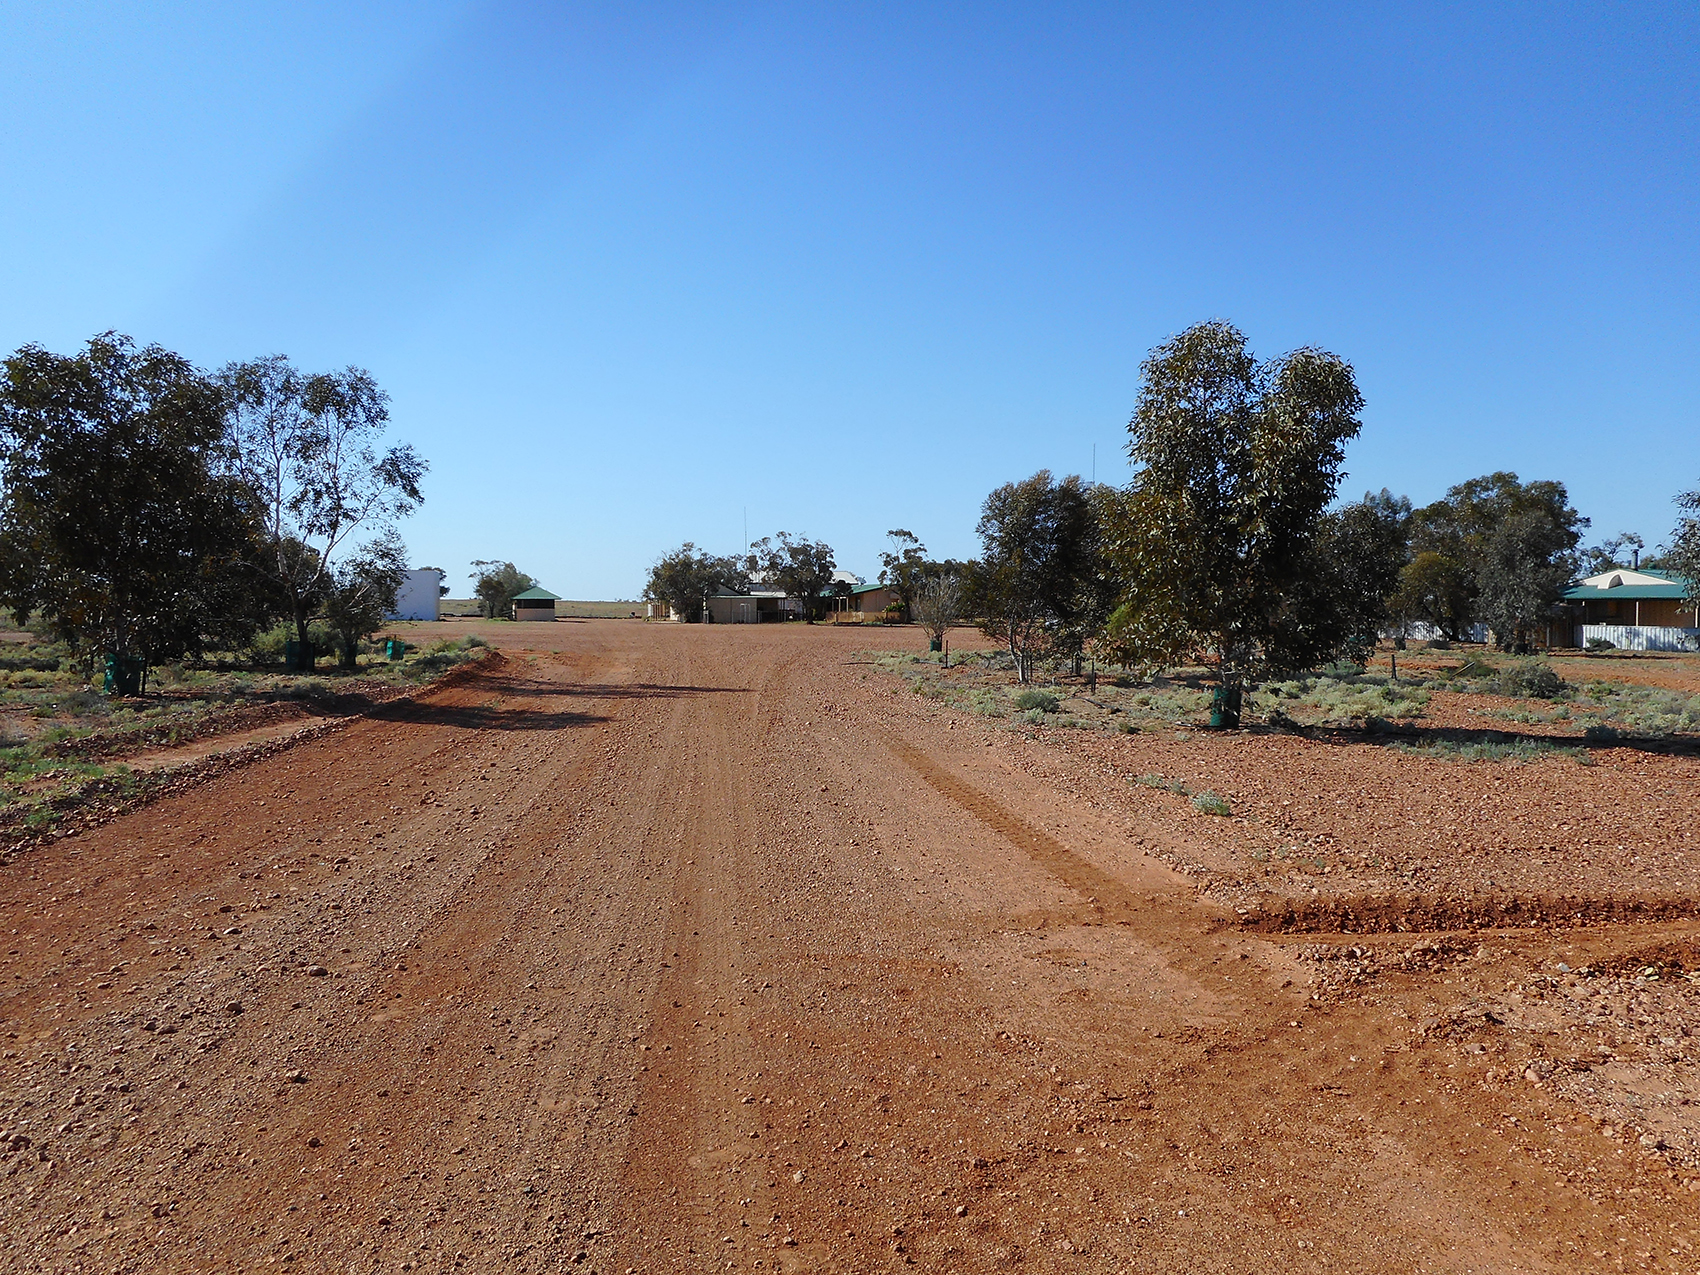 Driveway of Mt Barry Station